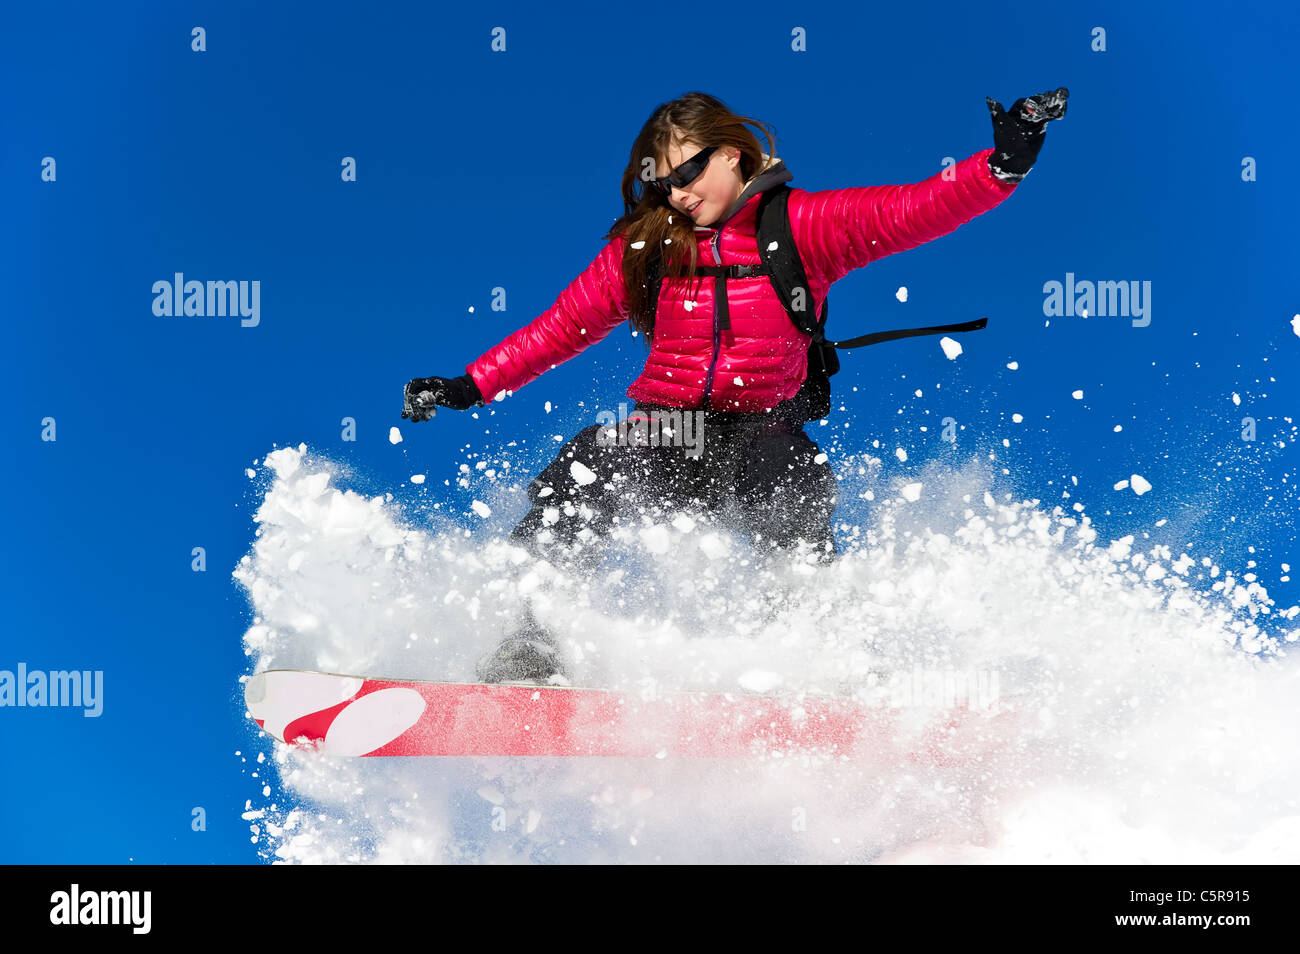 A Snowboarder riding fresh powder snow. - Stock Image